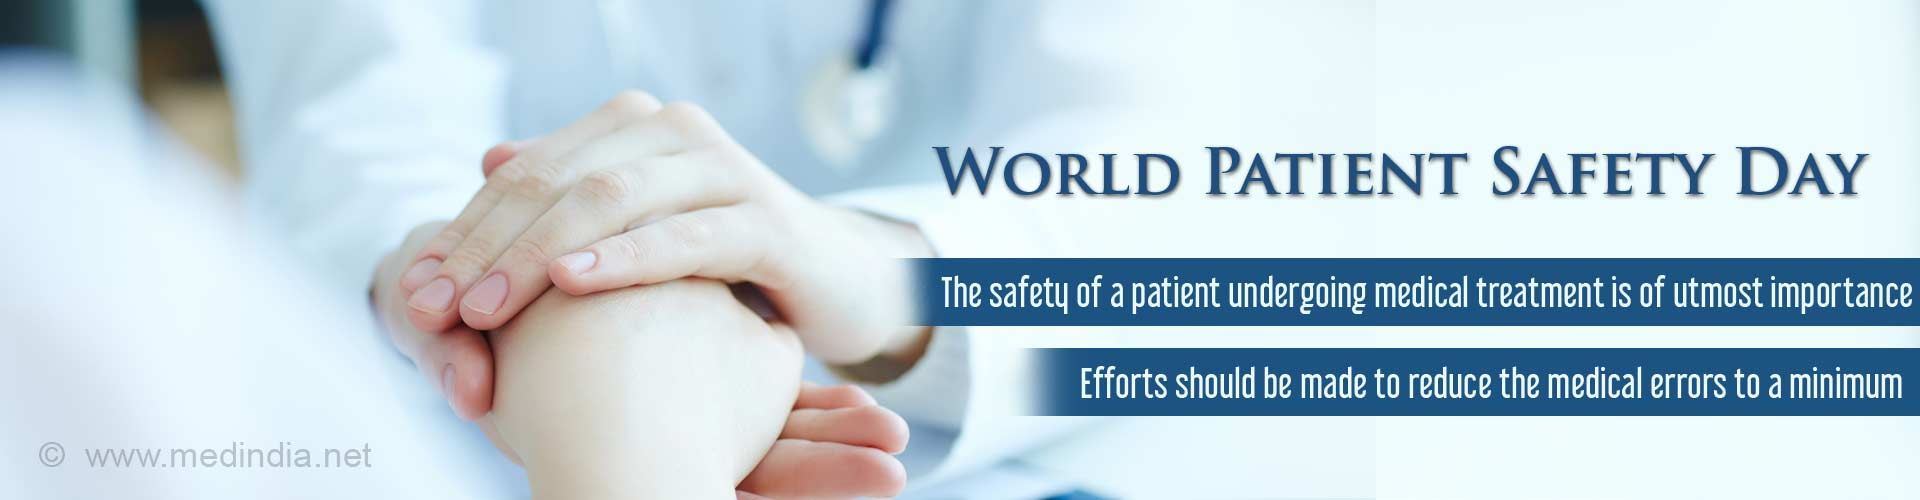 World Patient Safety Day - The safety of a patient undergoing medical treatment is of utmost importance - Efforts should be made to reduce the medical errors to a minimum